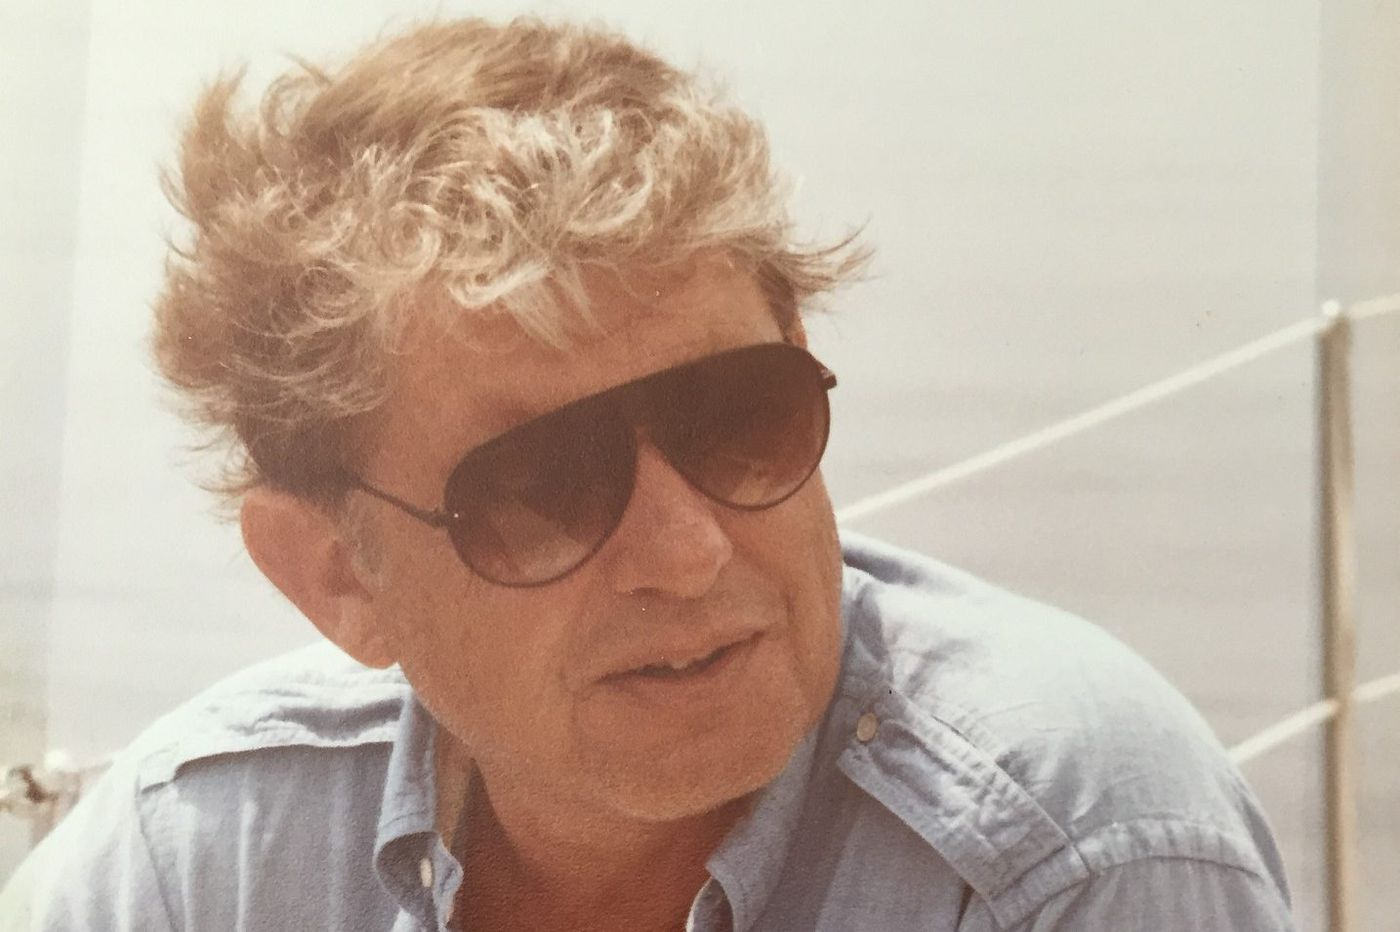 Al Schaefer, 86, a leading Philly adman in 1970s and 1980s